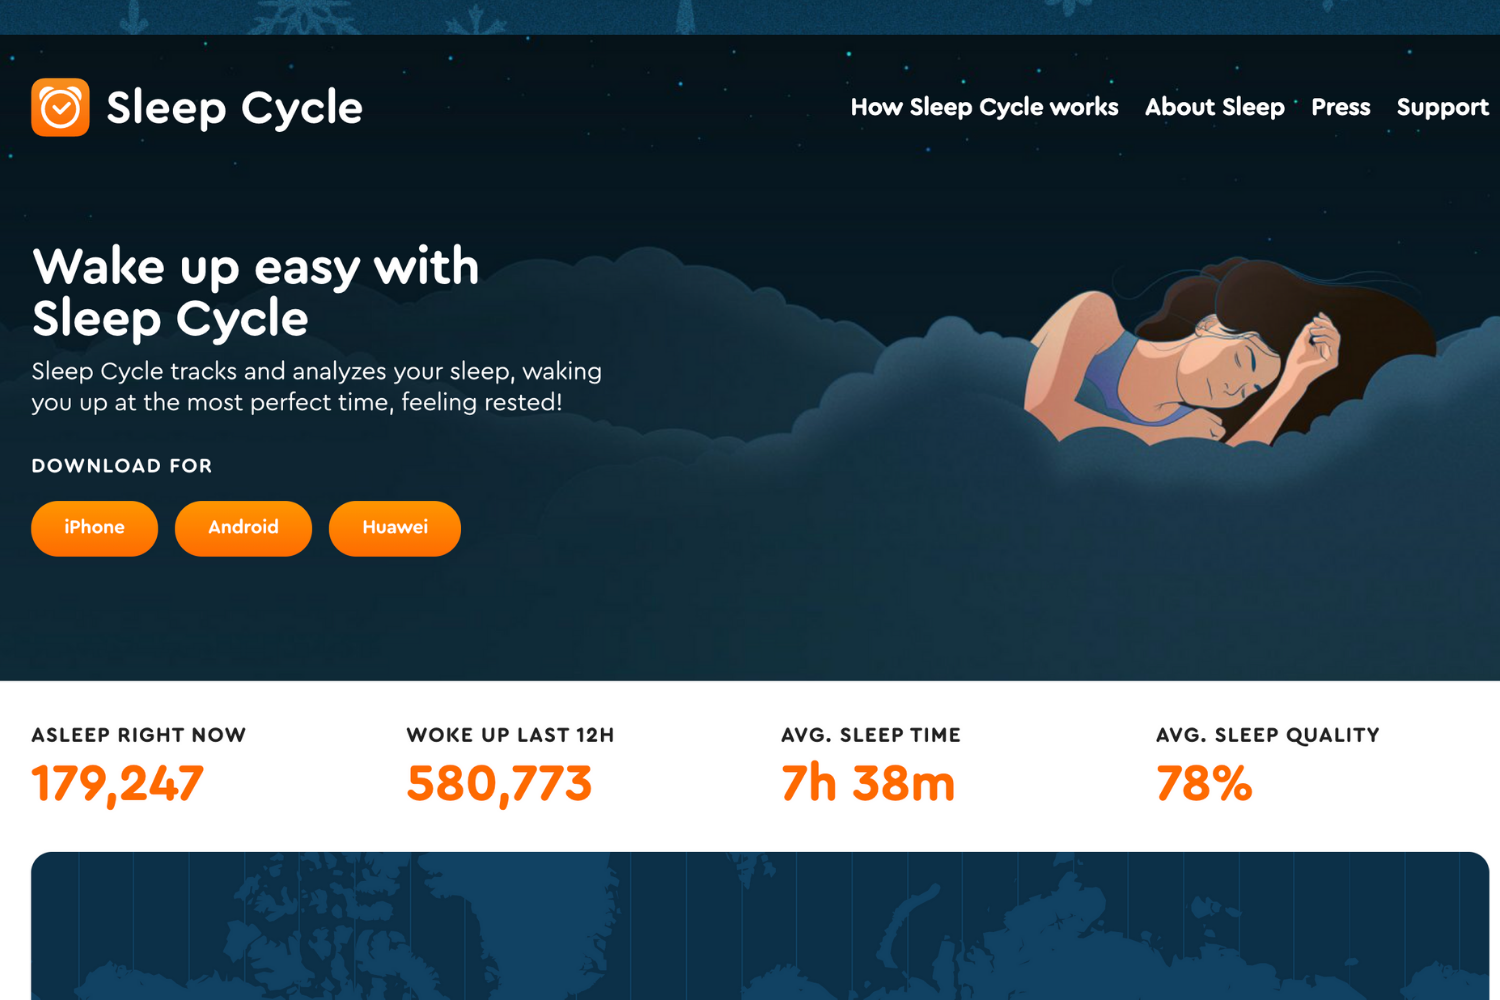 The splashpage for the app Sleep Cycle.